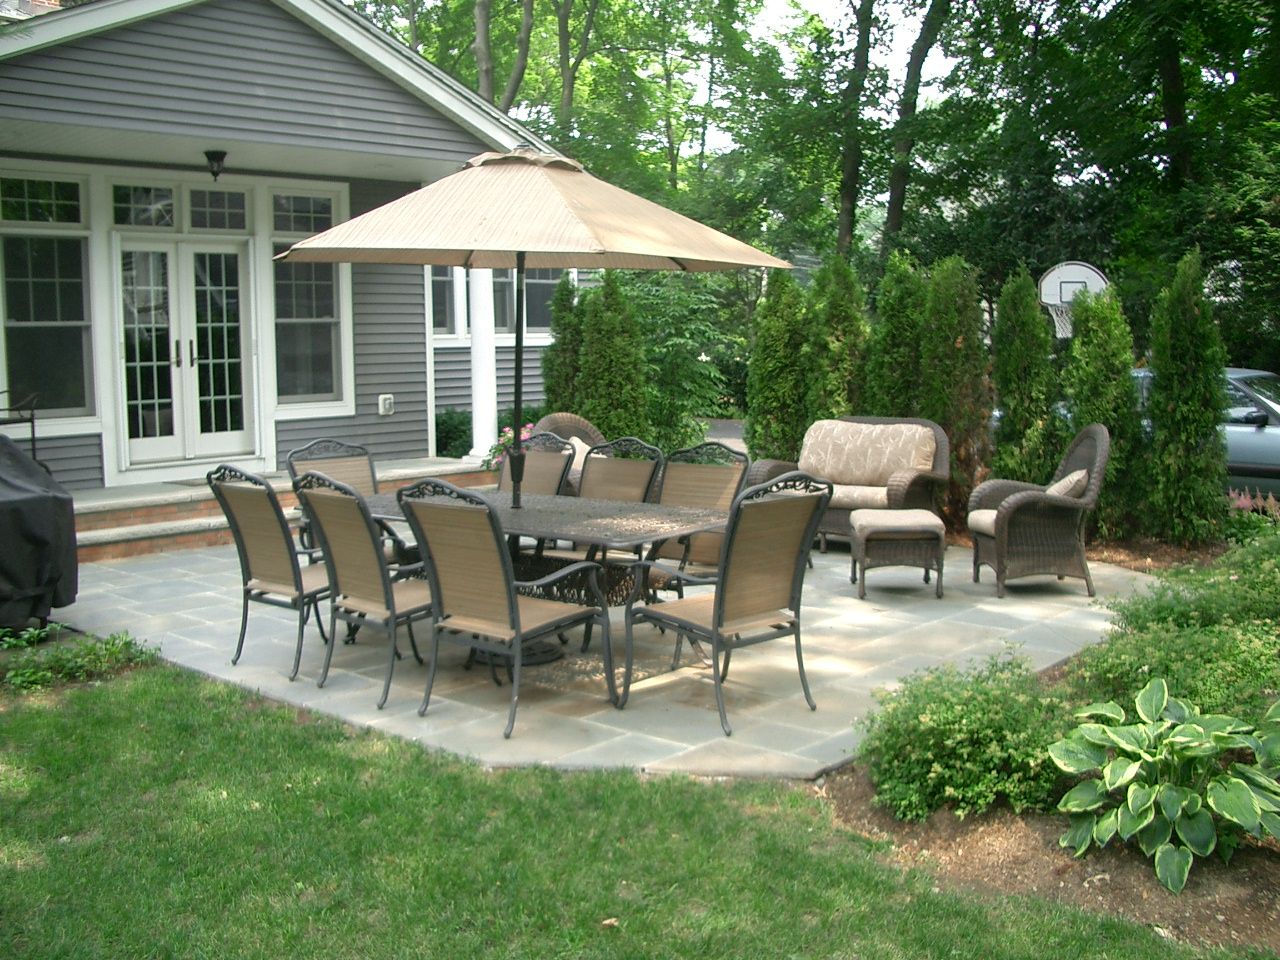 bergen county patio design - Patio Designs